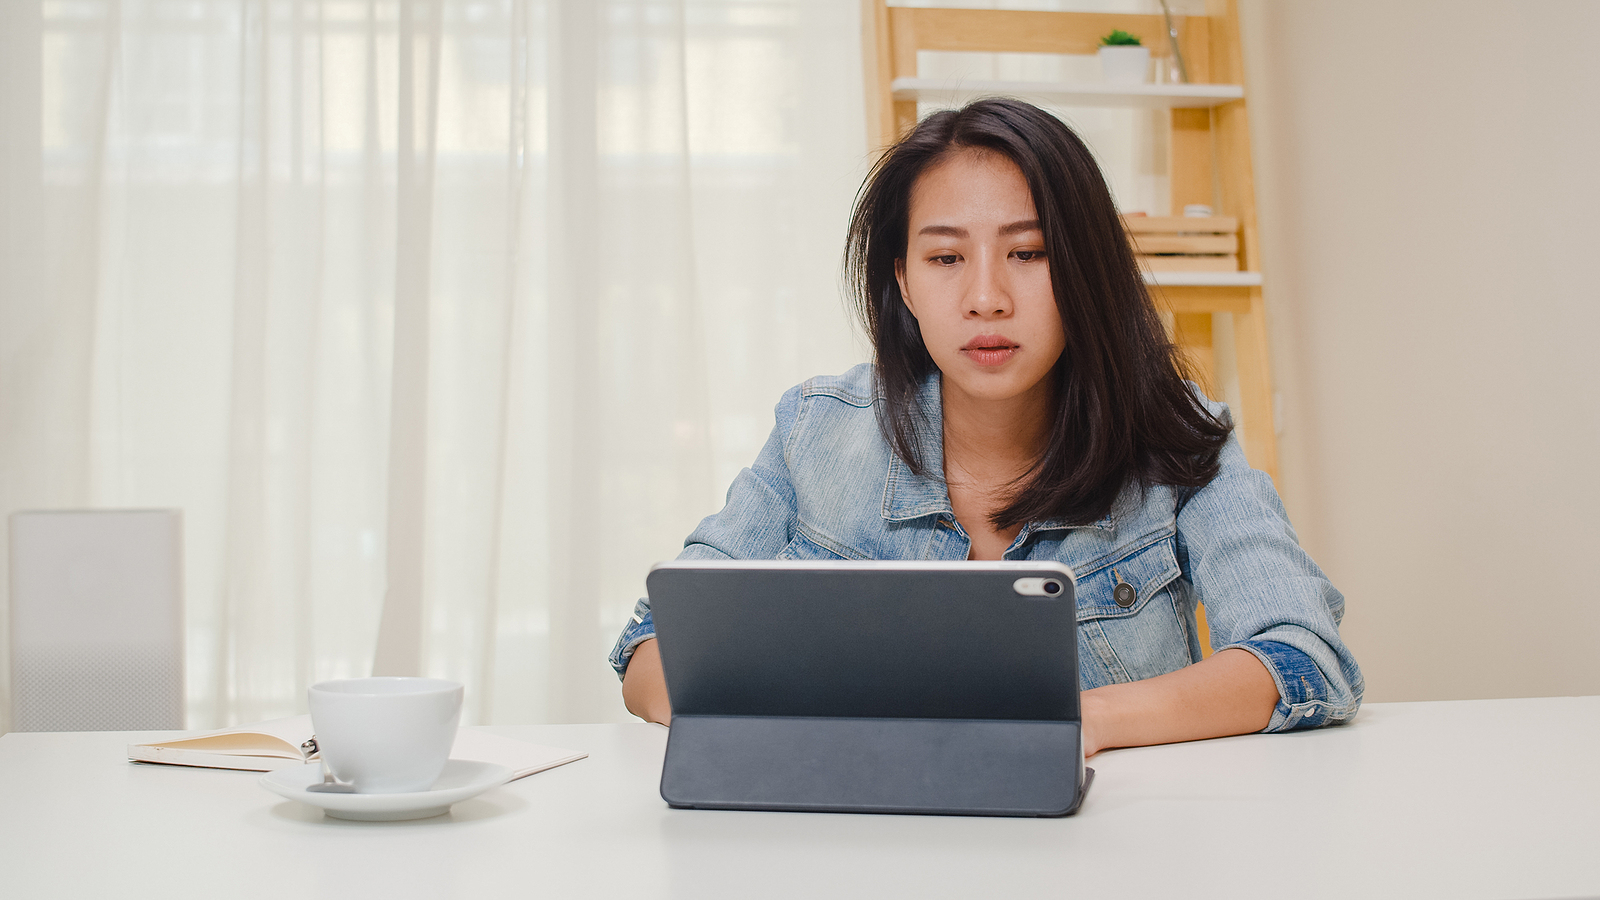 bigstock-Frustrated-Young-Asia-Lady-Hav-361488097.jpg